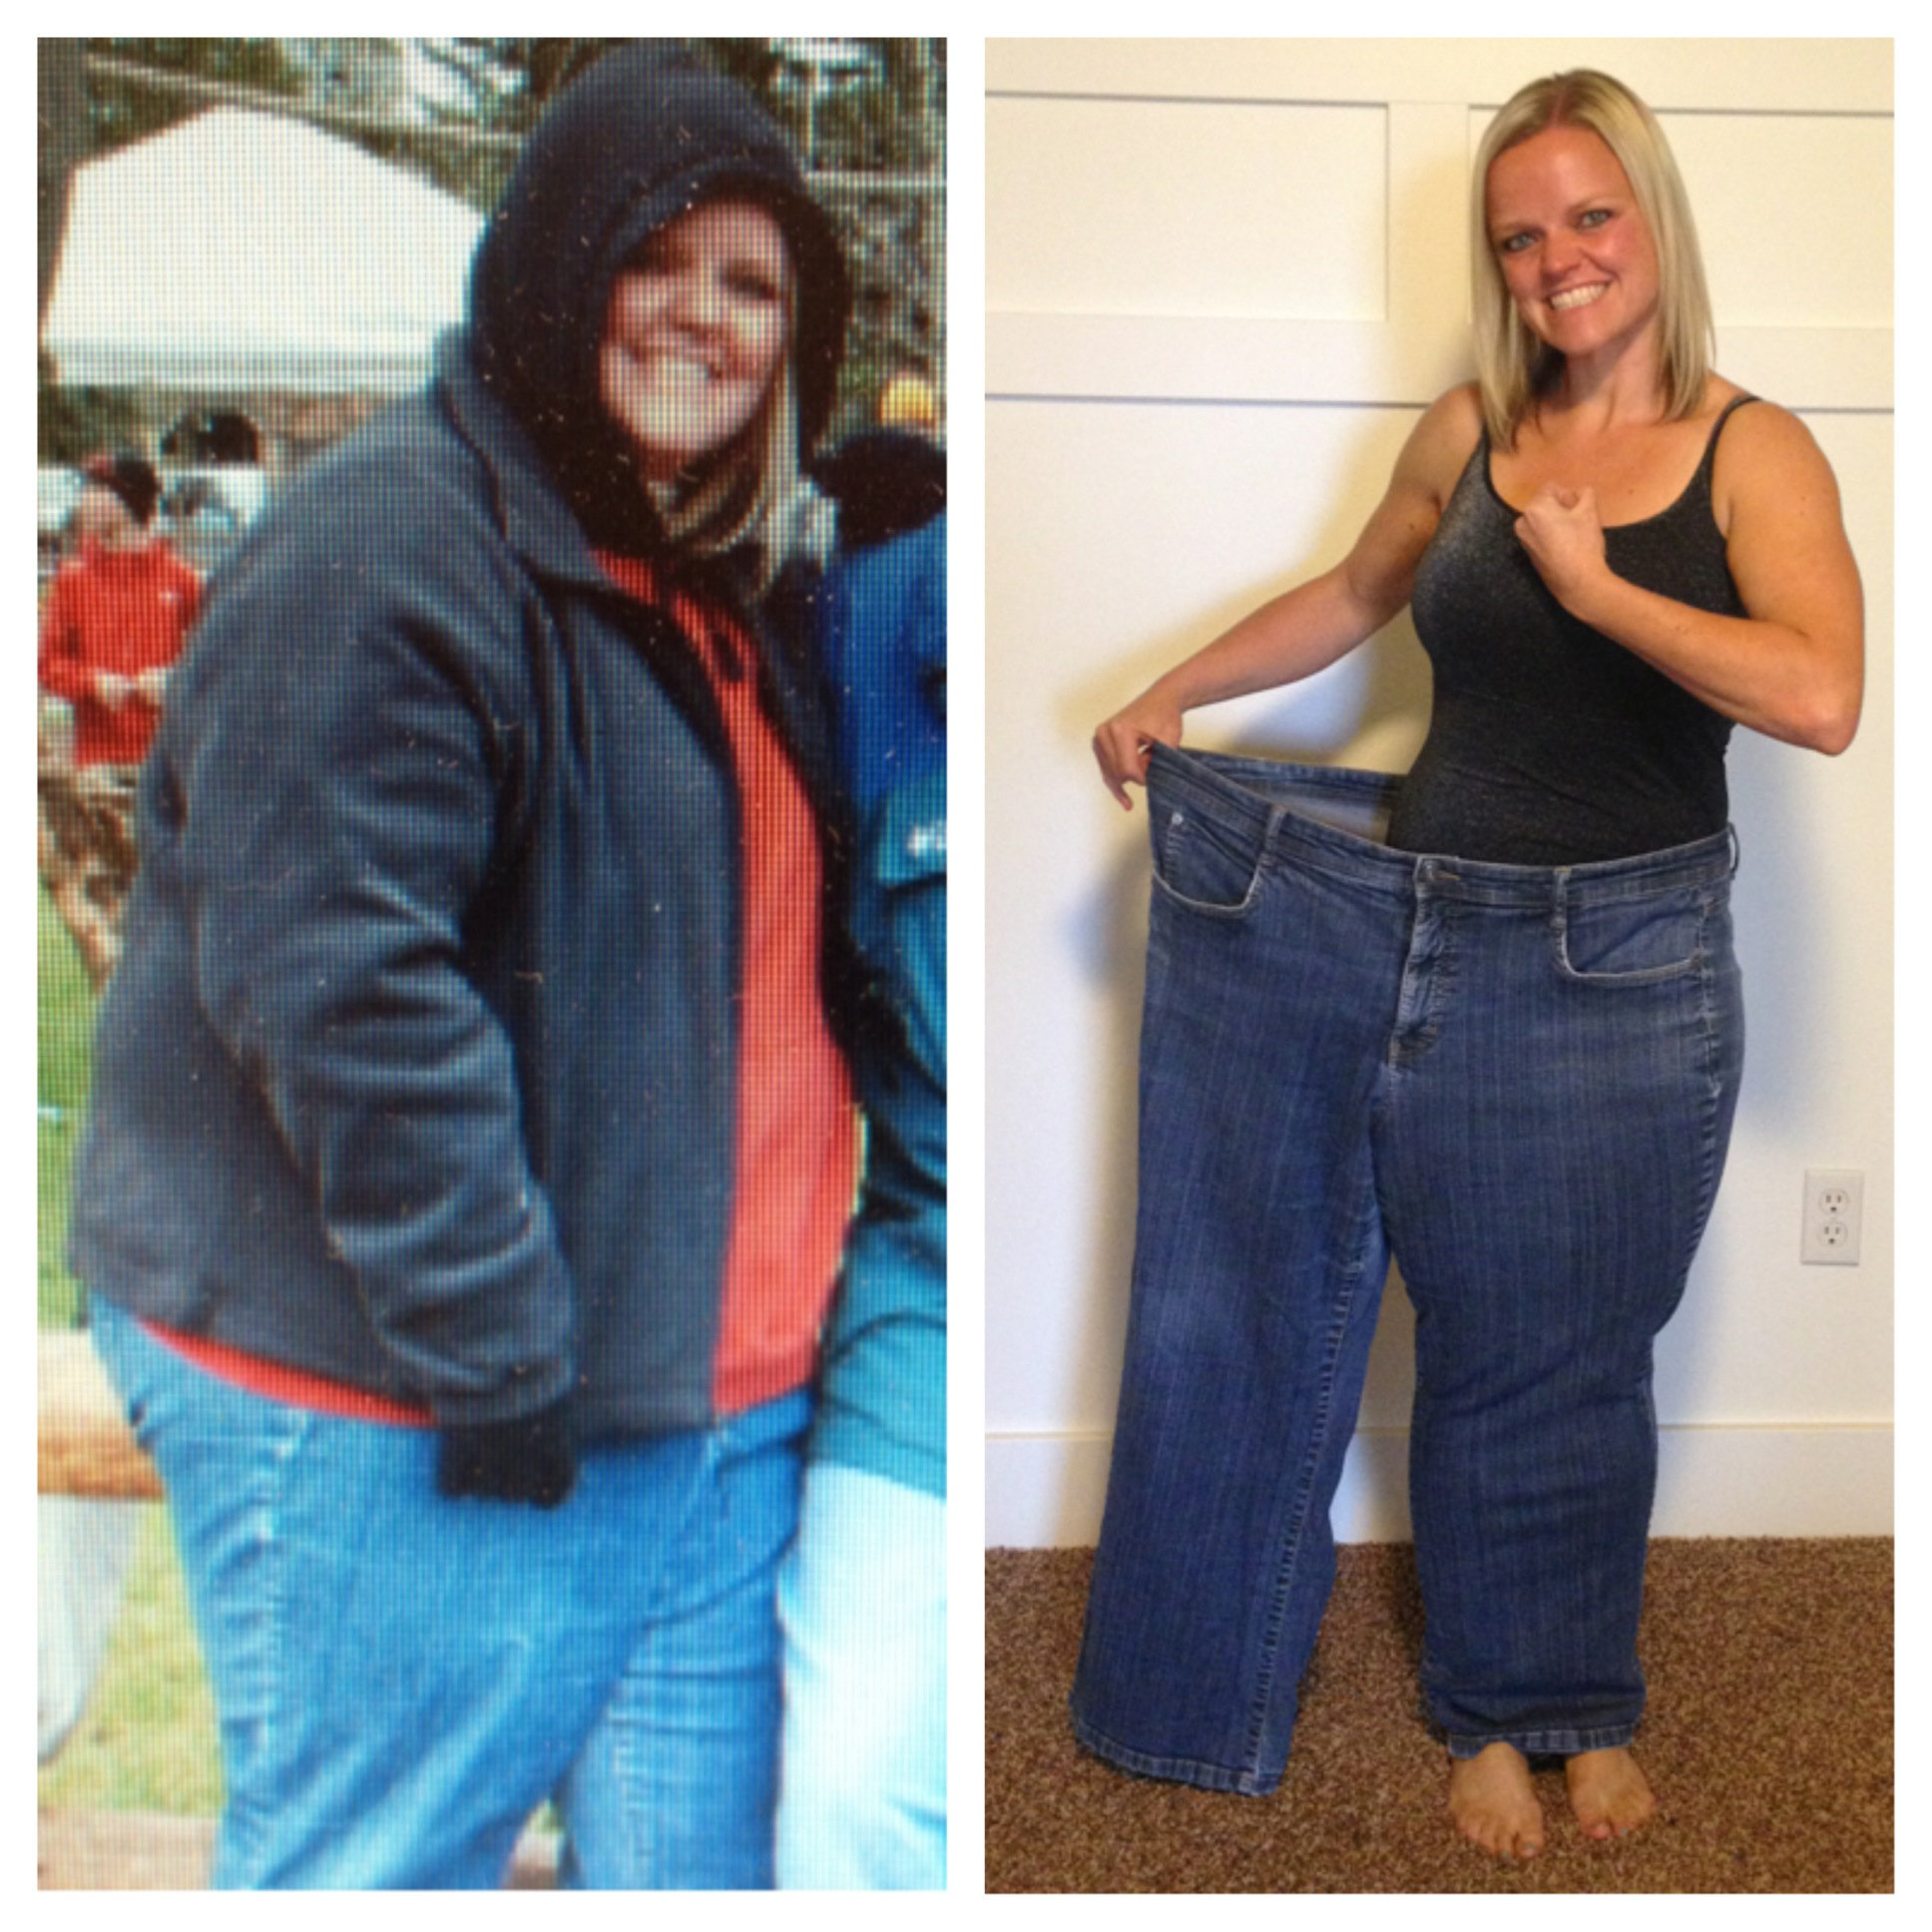 Great success story! Read before and after fitness transformation stories from women and men who hit weight loss goals and got THAT BODY with training and meal prep. Find inspiration, motivation, and workout tips | Little by little, one goes far... 159 Pounds Lost!